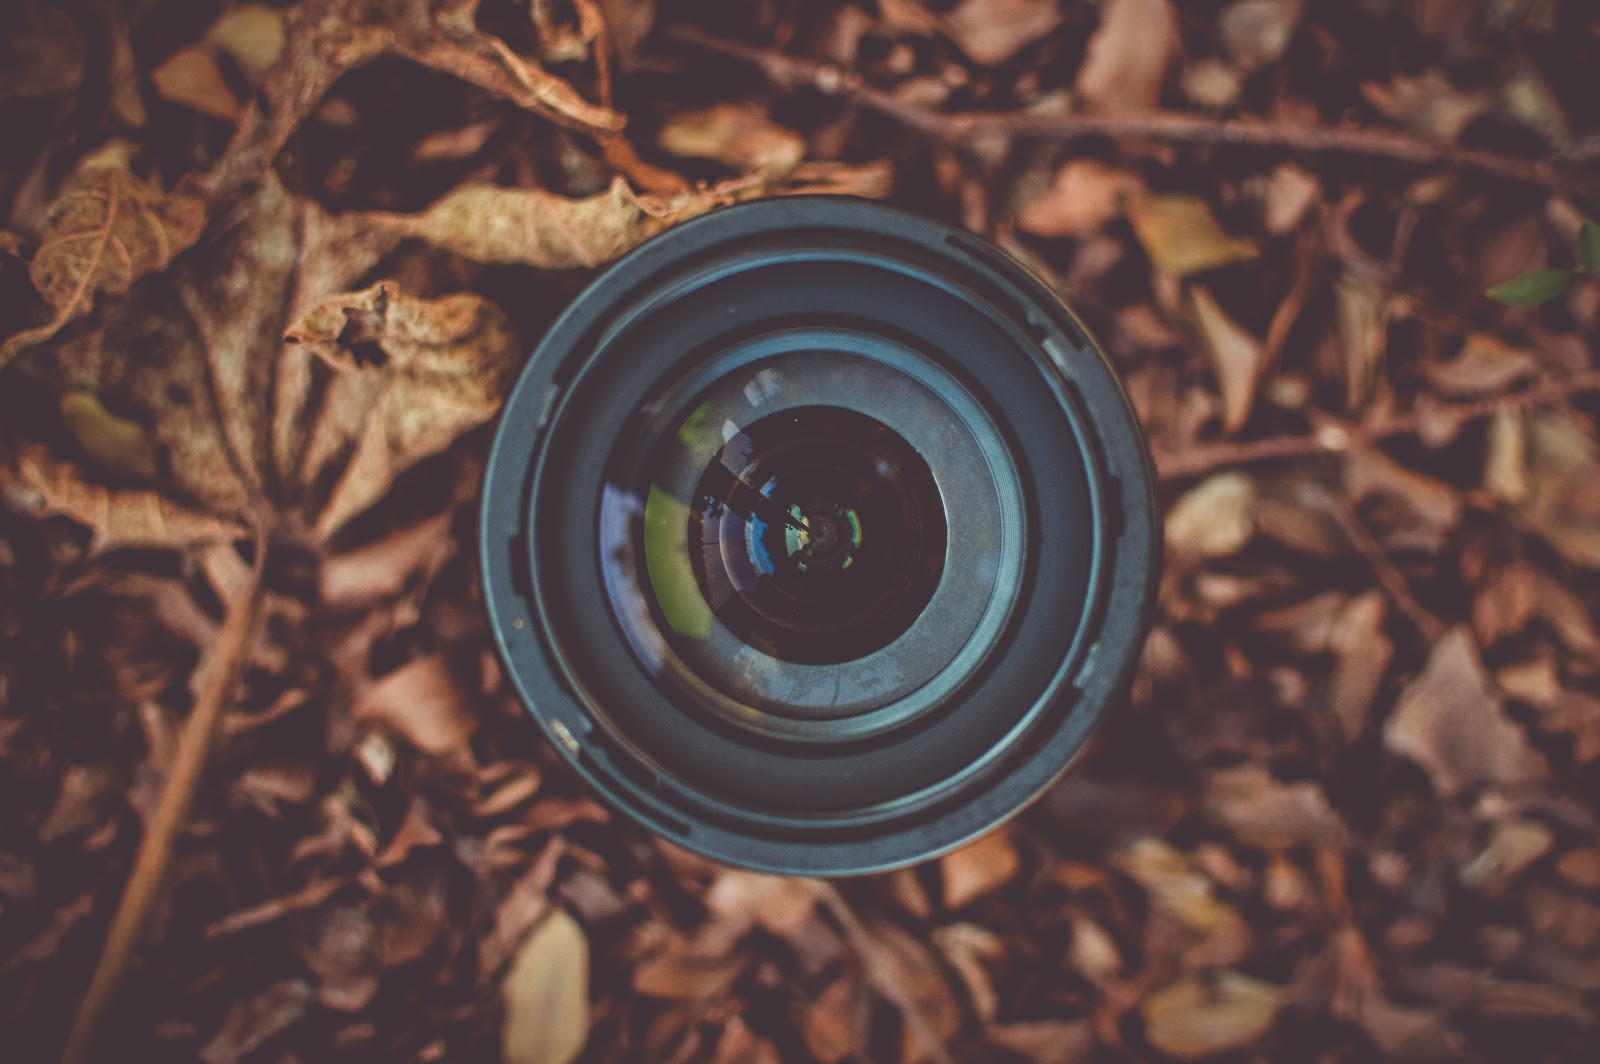 Camera Lens in Autumn Leaves